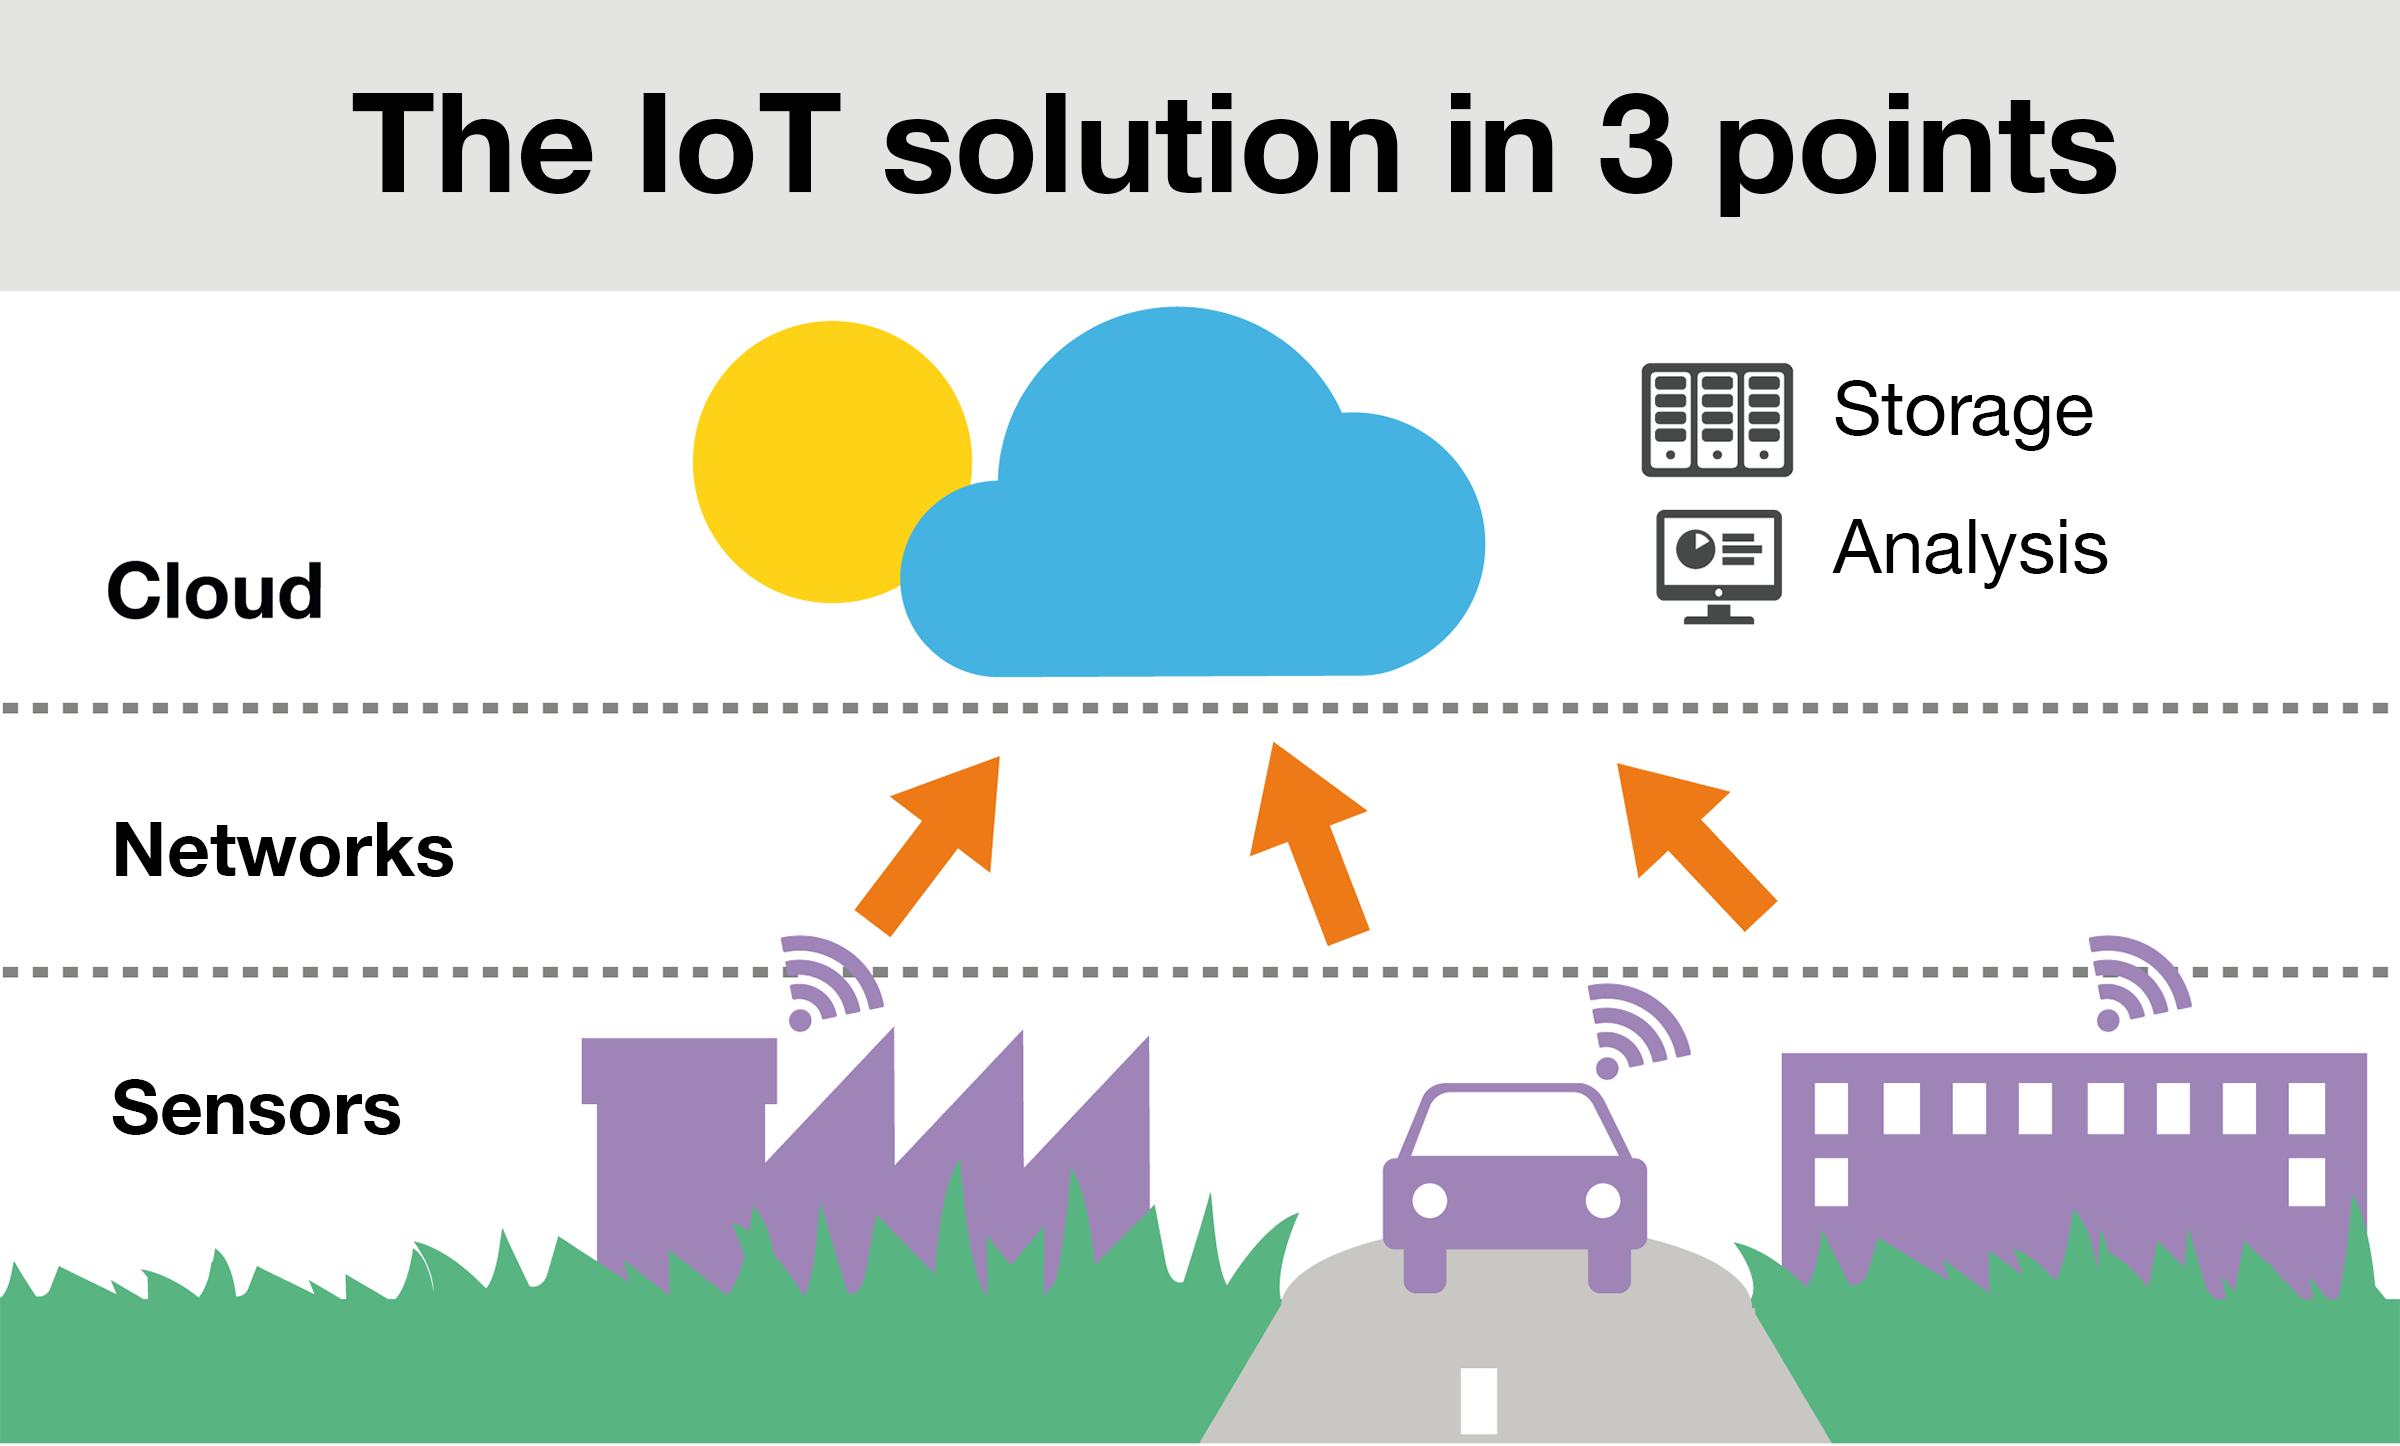 The IoT solution